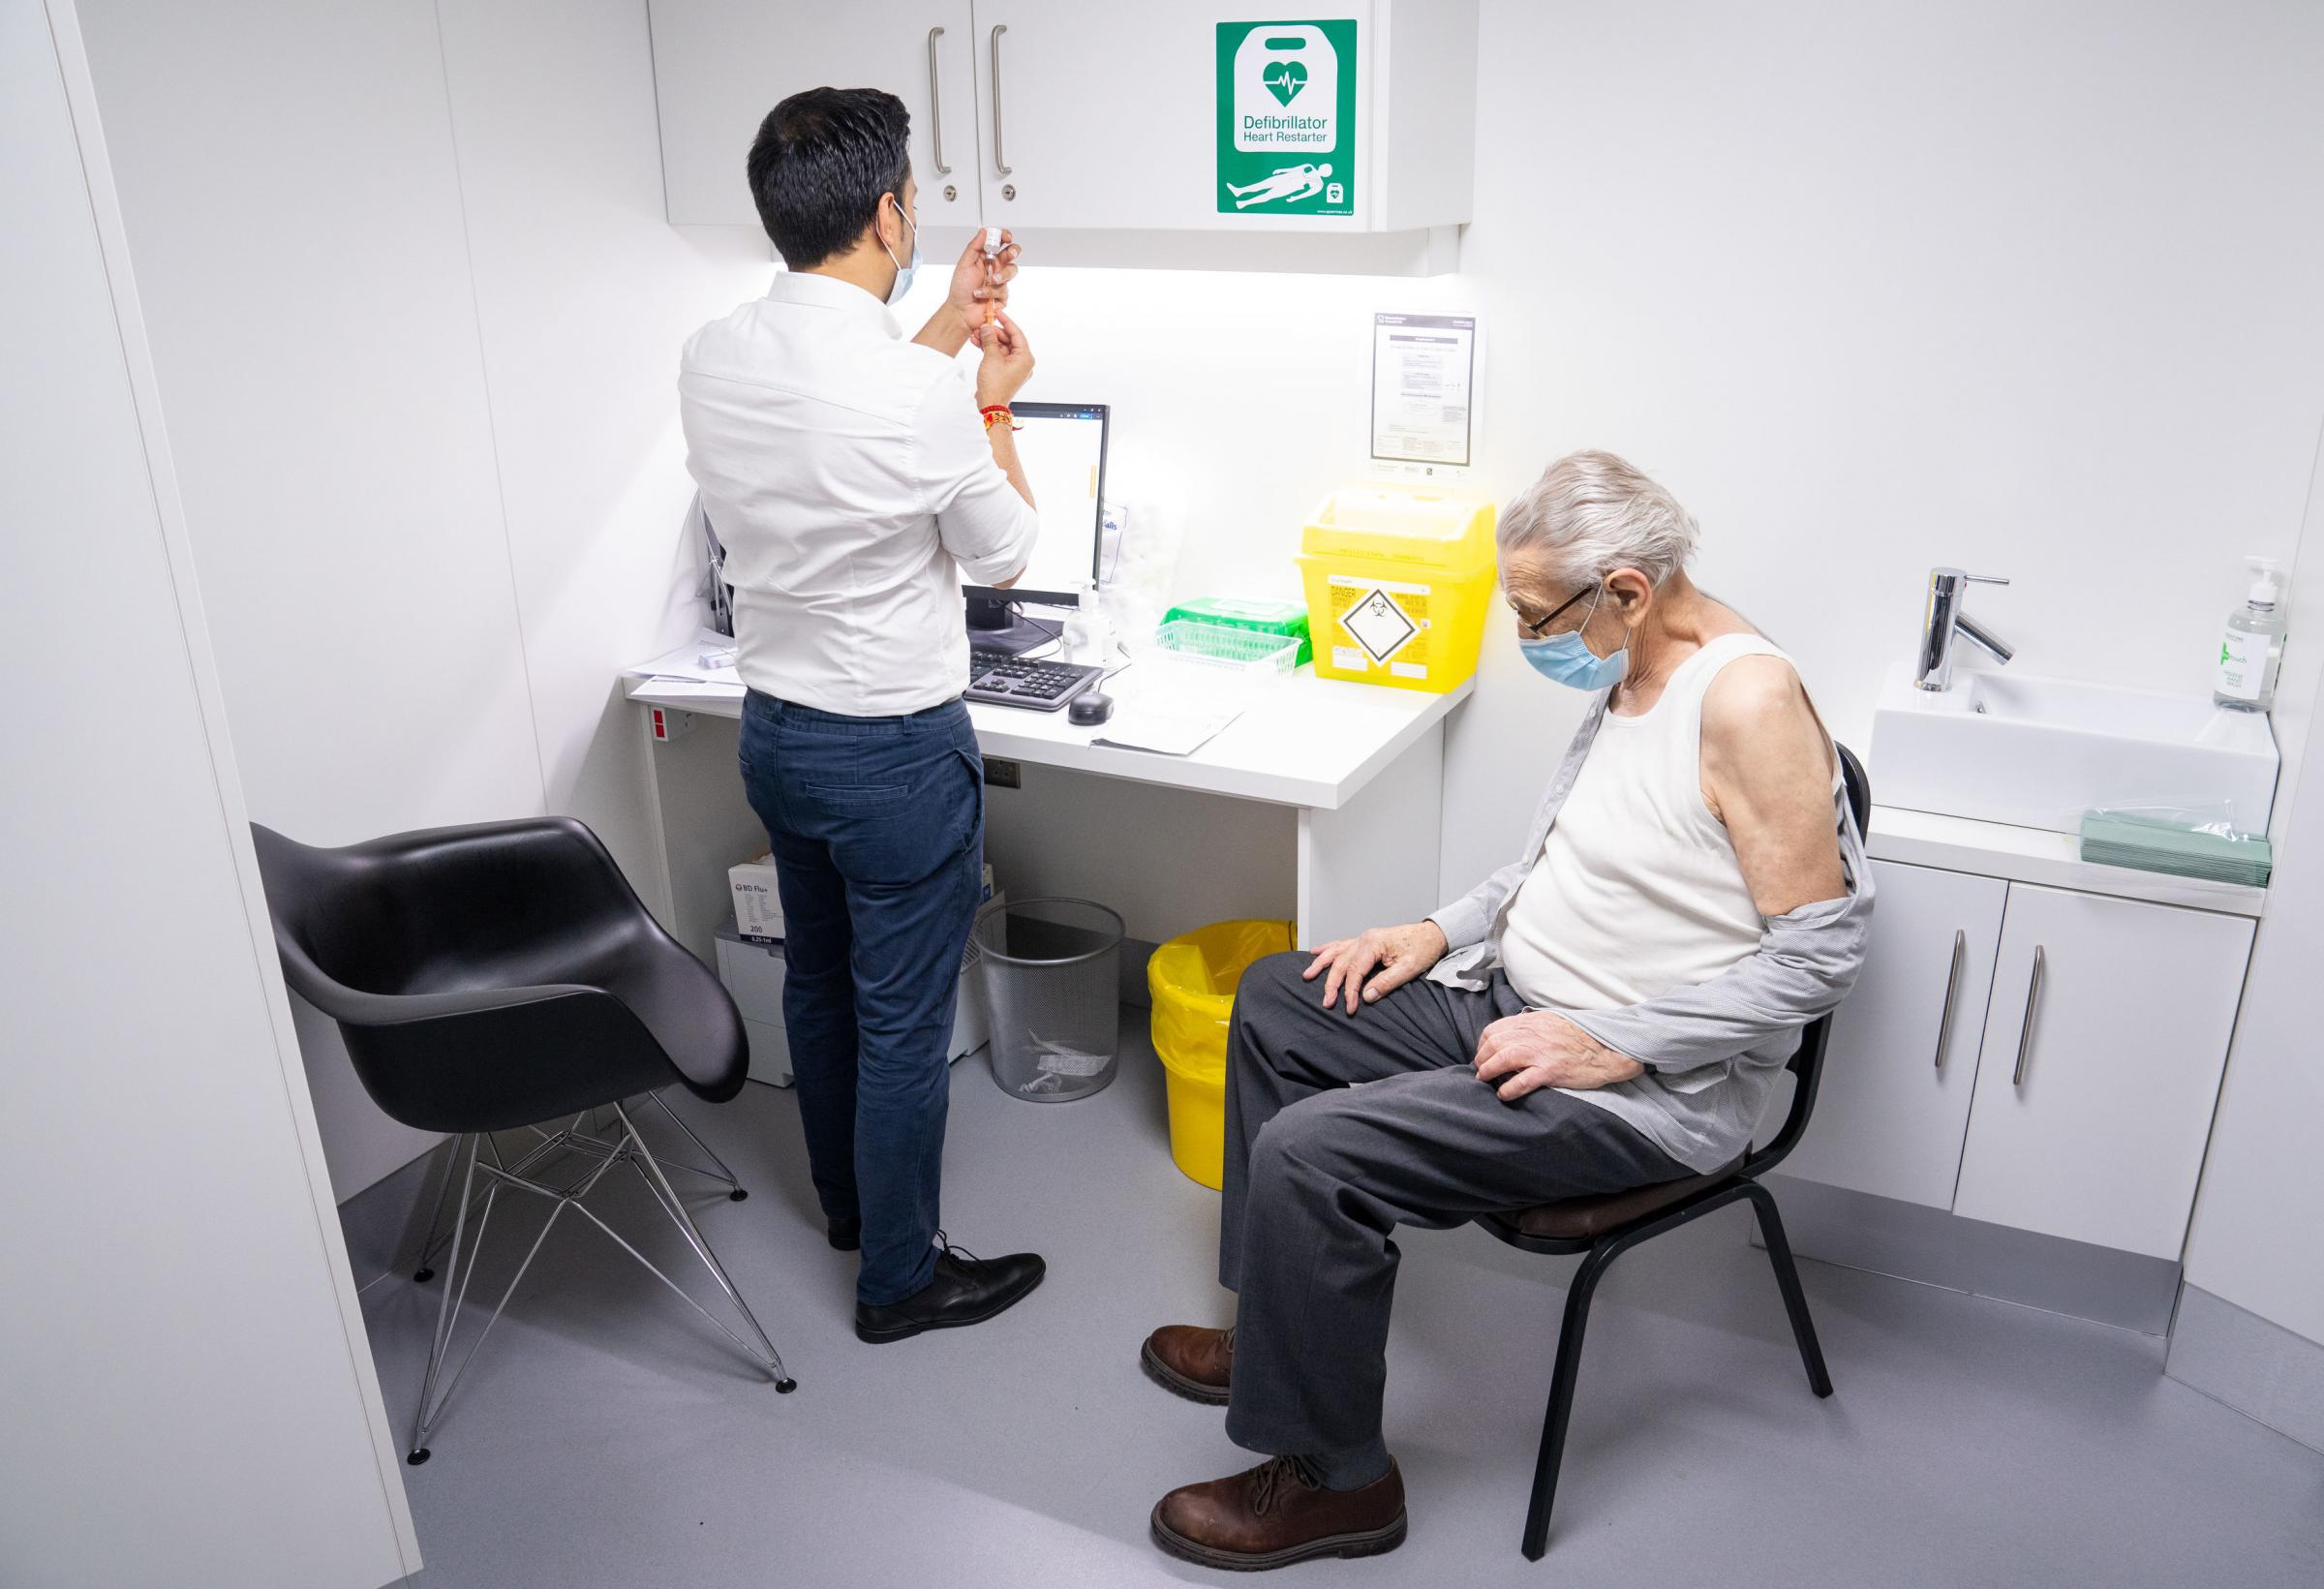 Pharmacist Bhaveen Patel prepares to give a dose of the Oxford / AstraZeneca covid vaccine to Brian Bourne at a coronavirus vaccination clinic held at Junction Pharmacy in Brixton, London. The roll out of the vaccination programme continues as the Governm